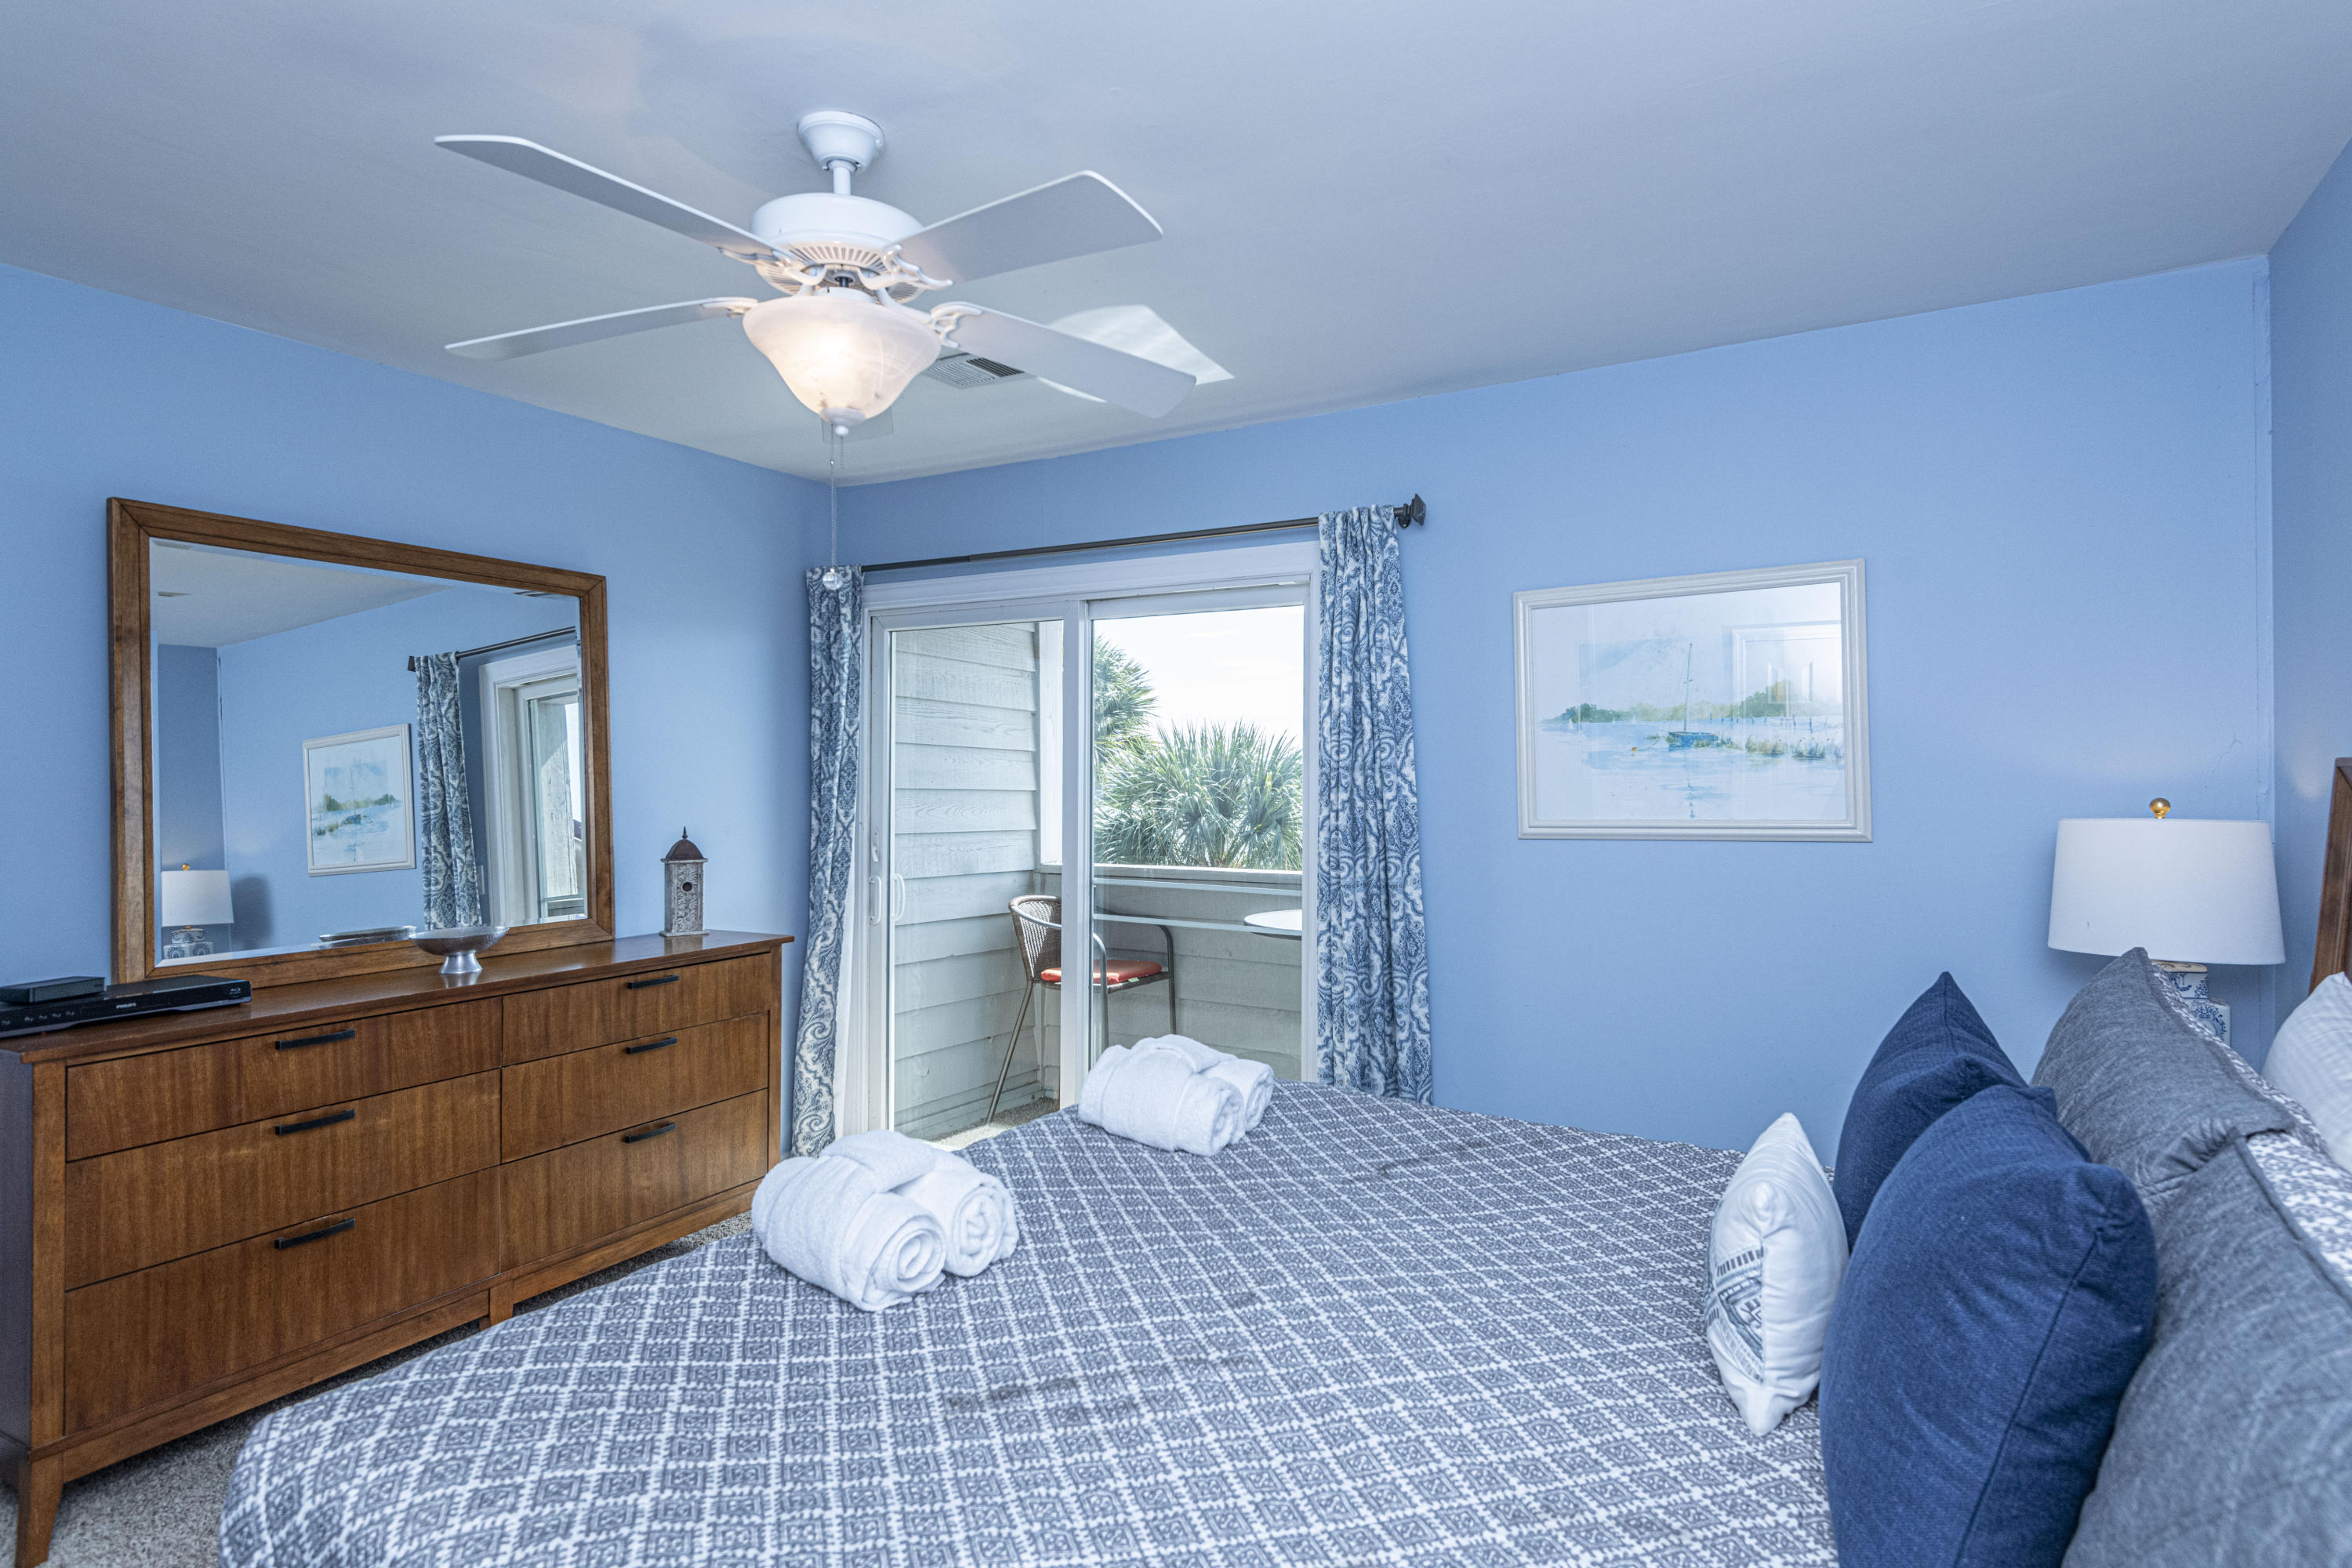 Mariners Cay Homes For Sale - 60 Mariners Cay, Folly Beach, SC - 13